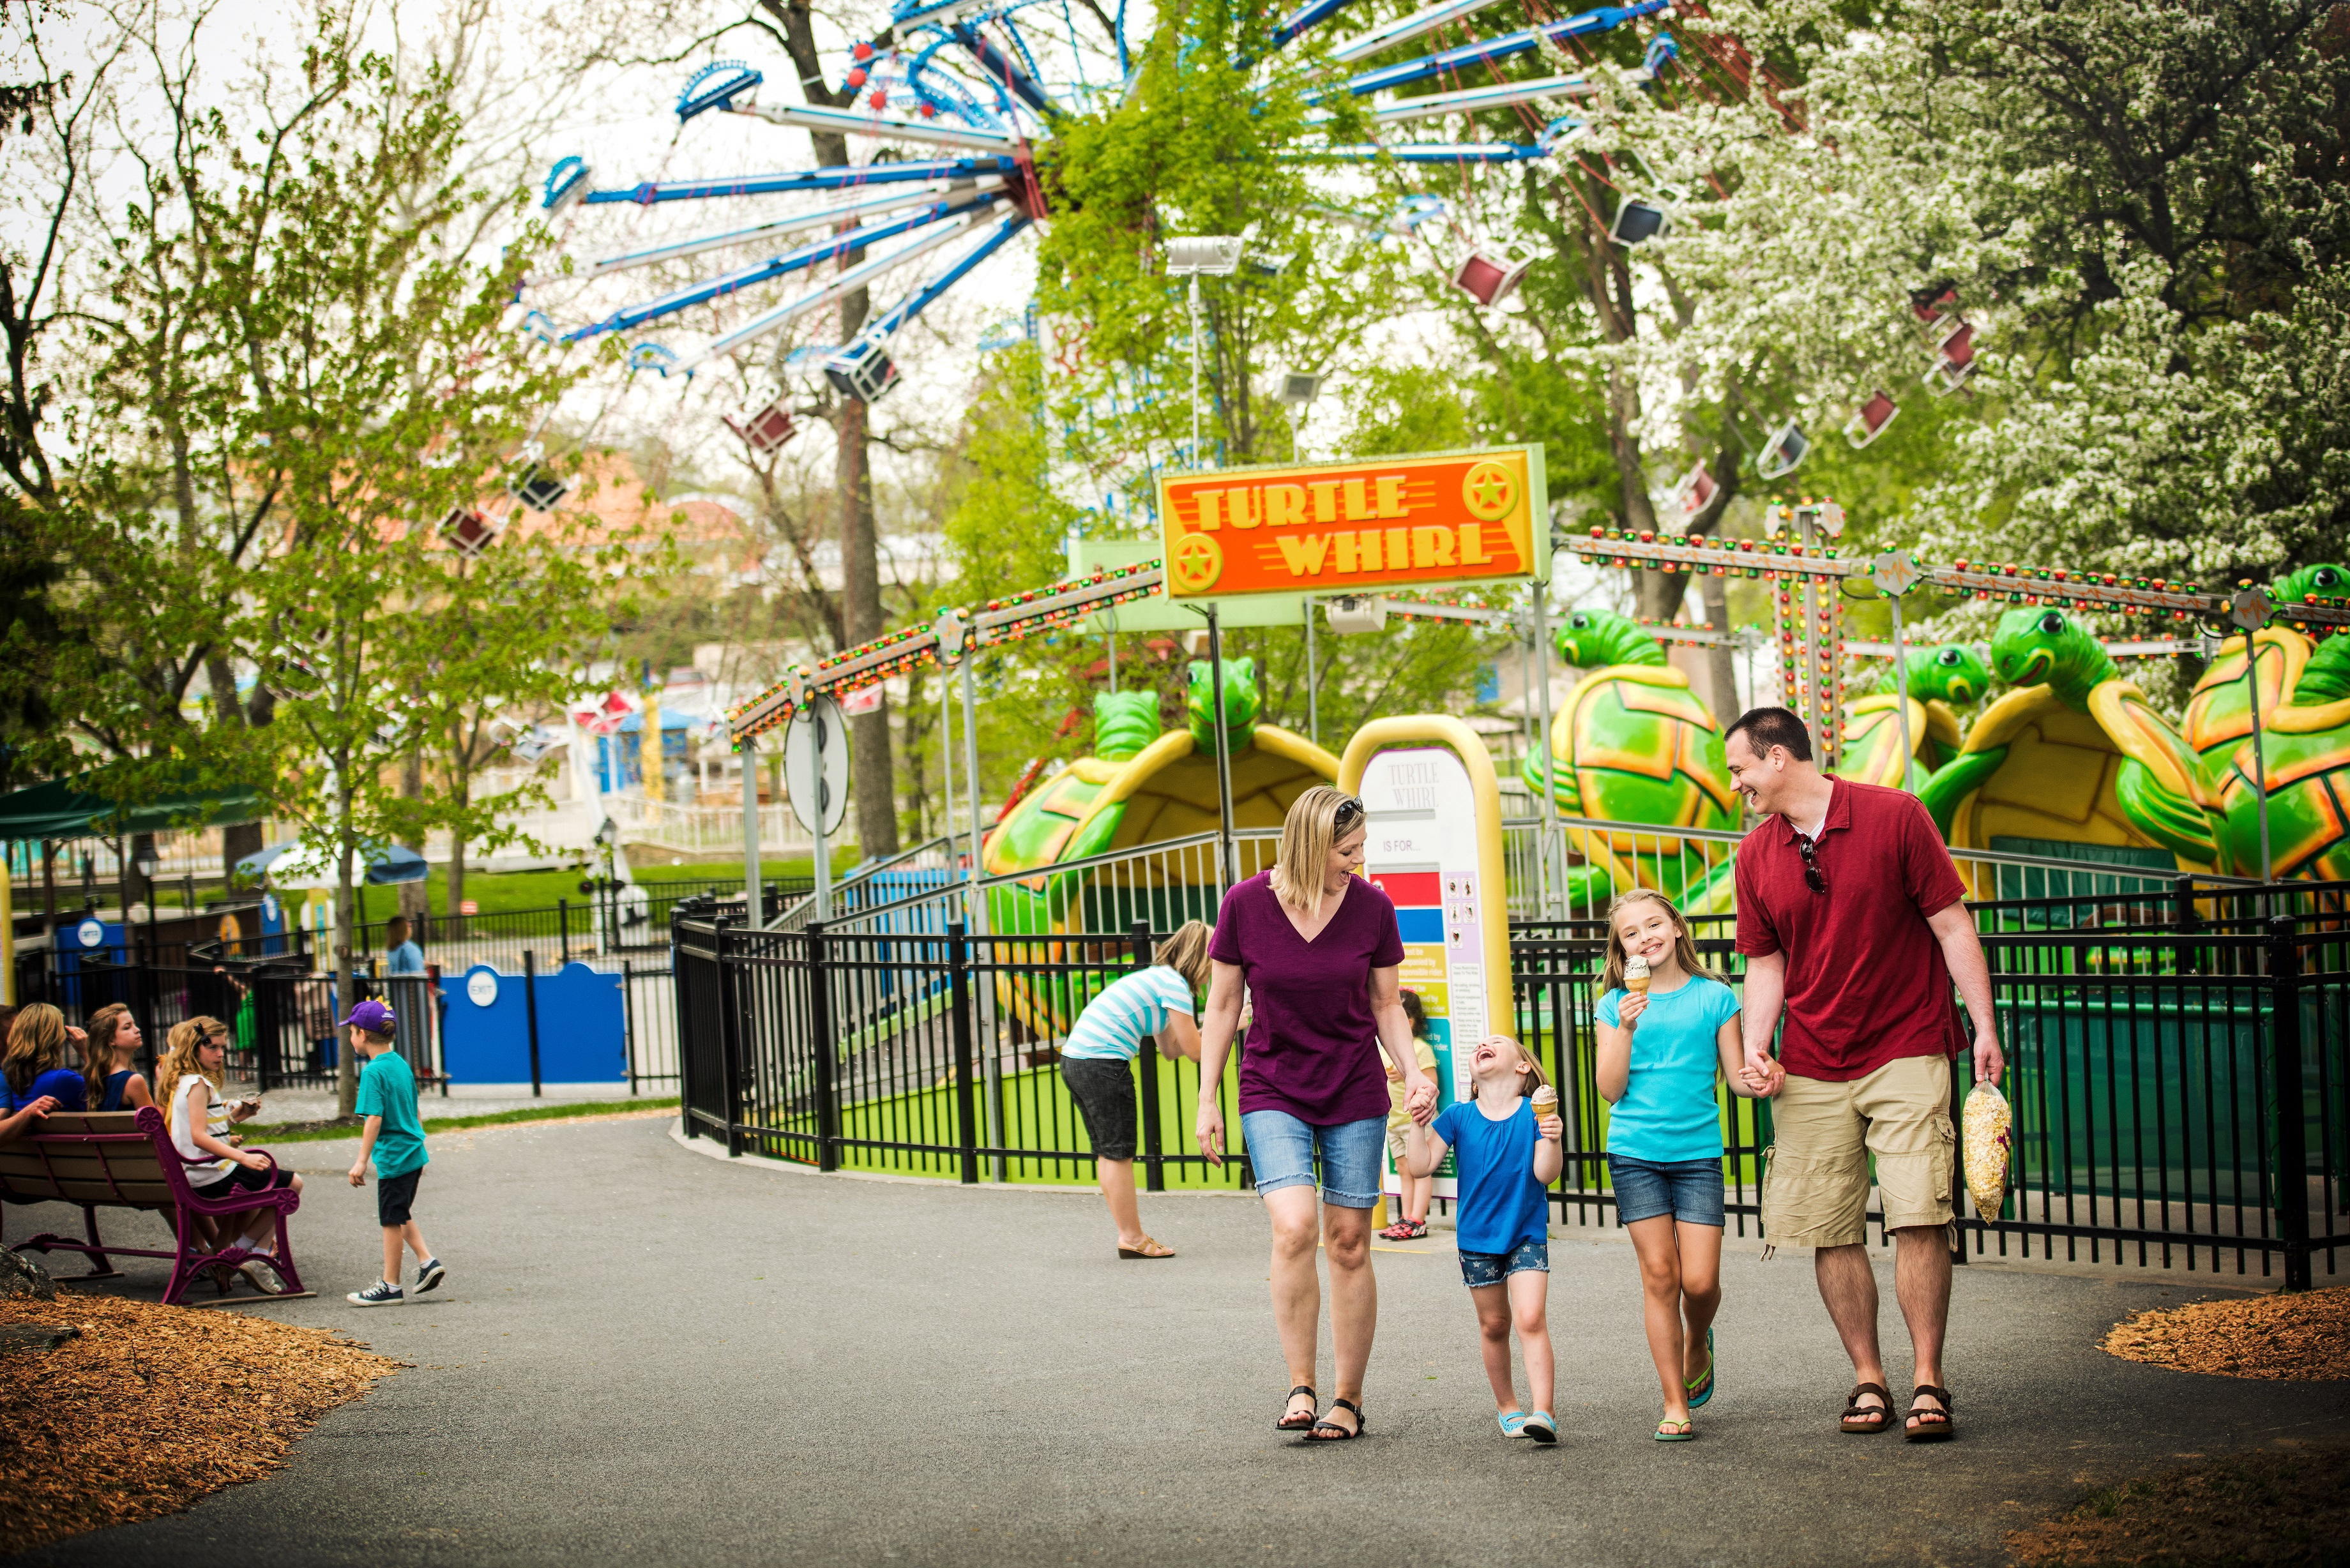 Family walking hand-in-hand through amusement park while the two young girls eat ice cream cones.